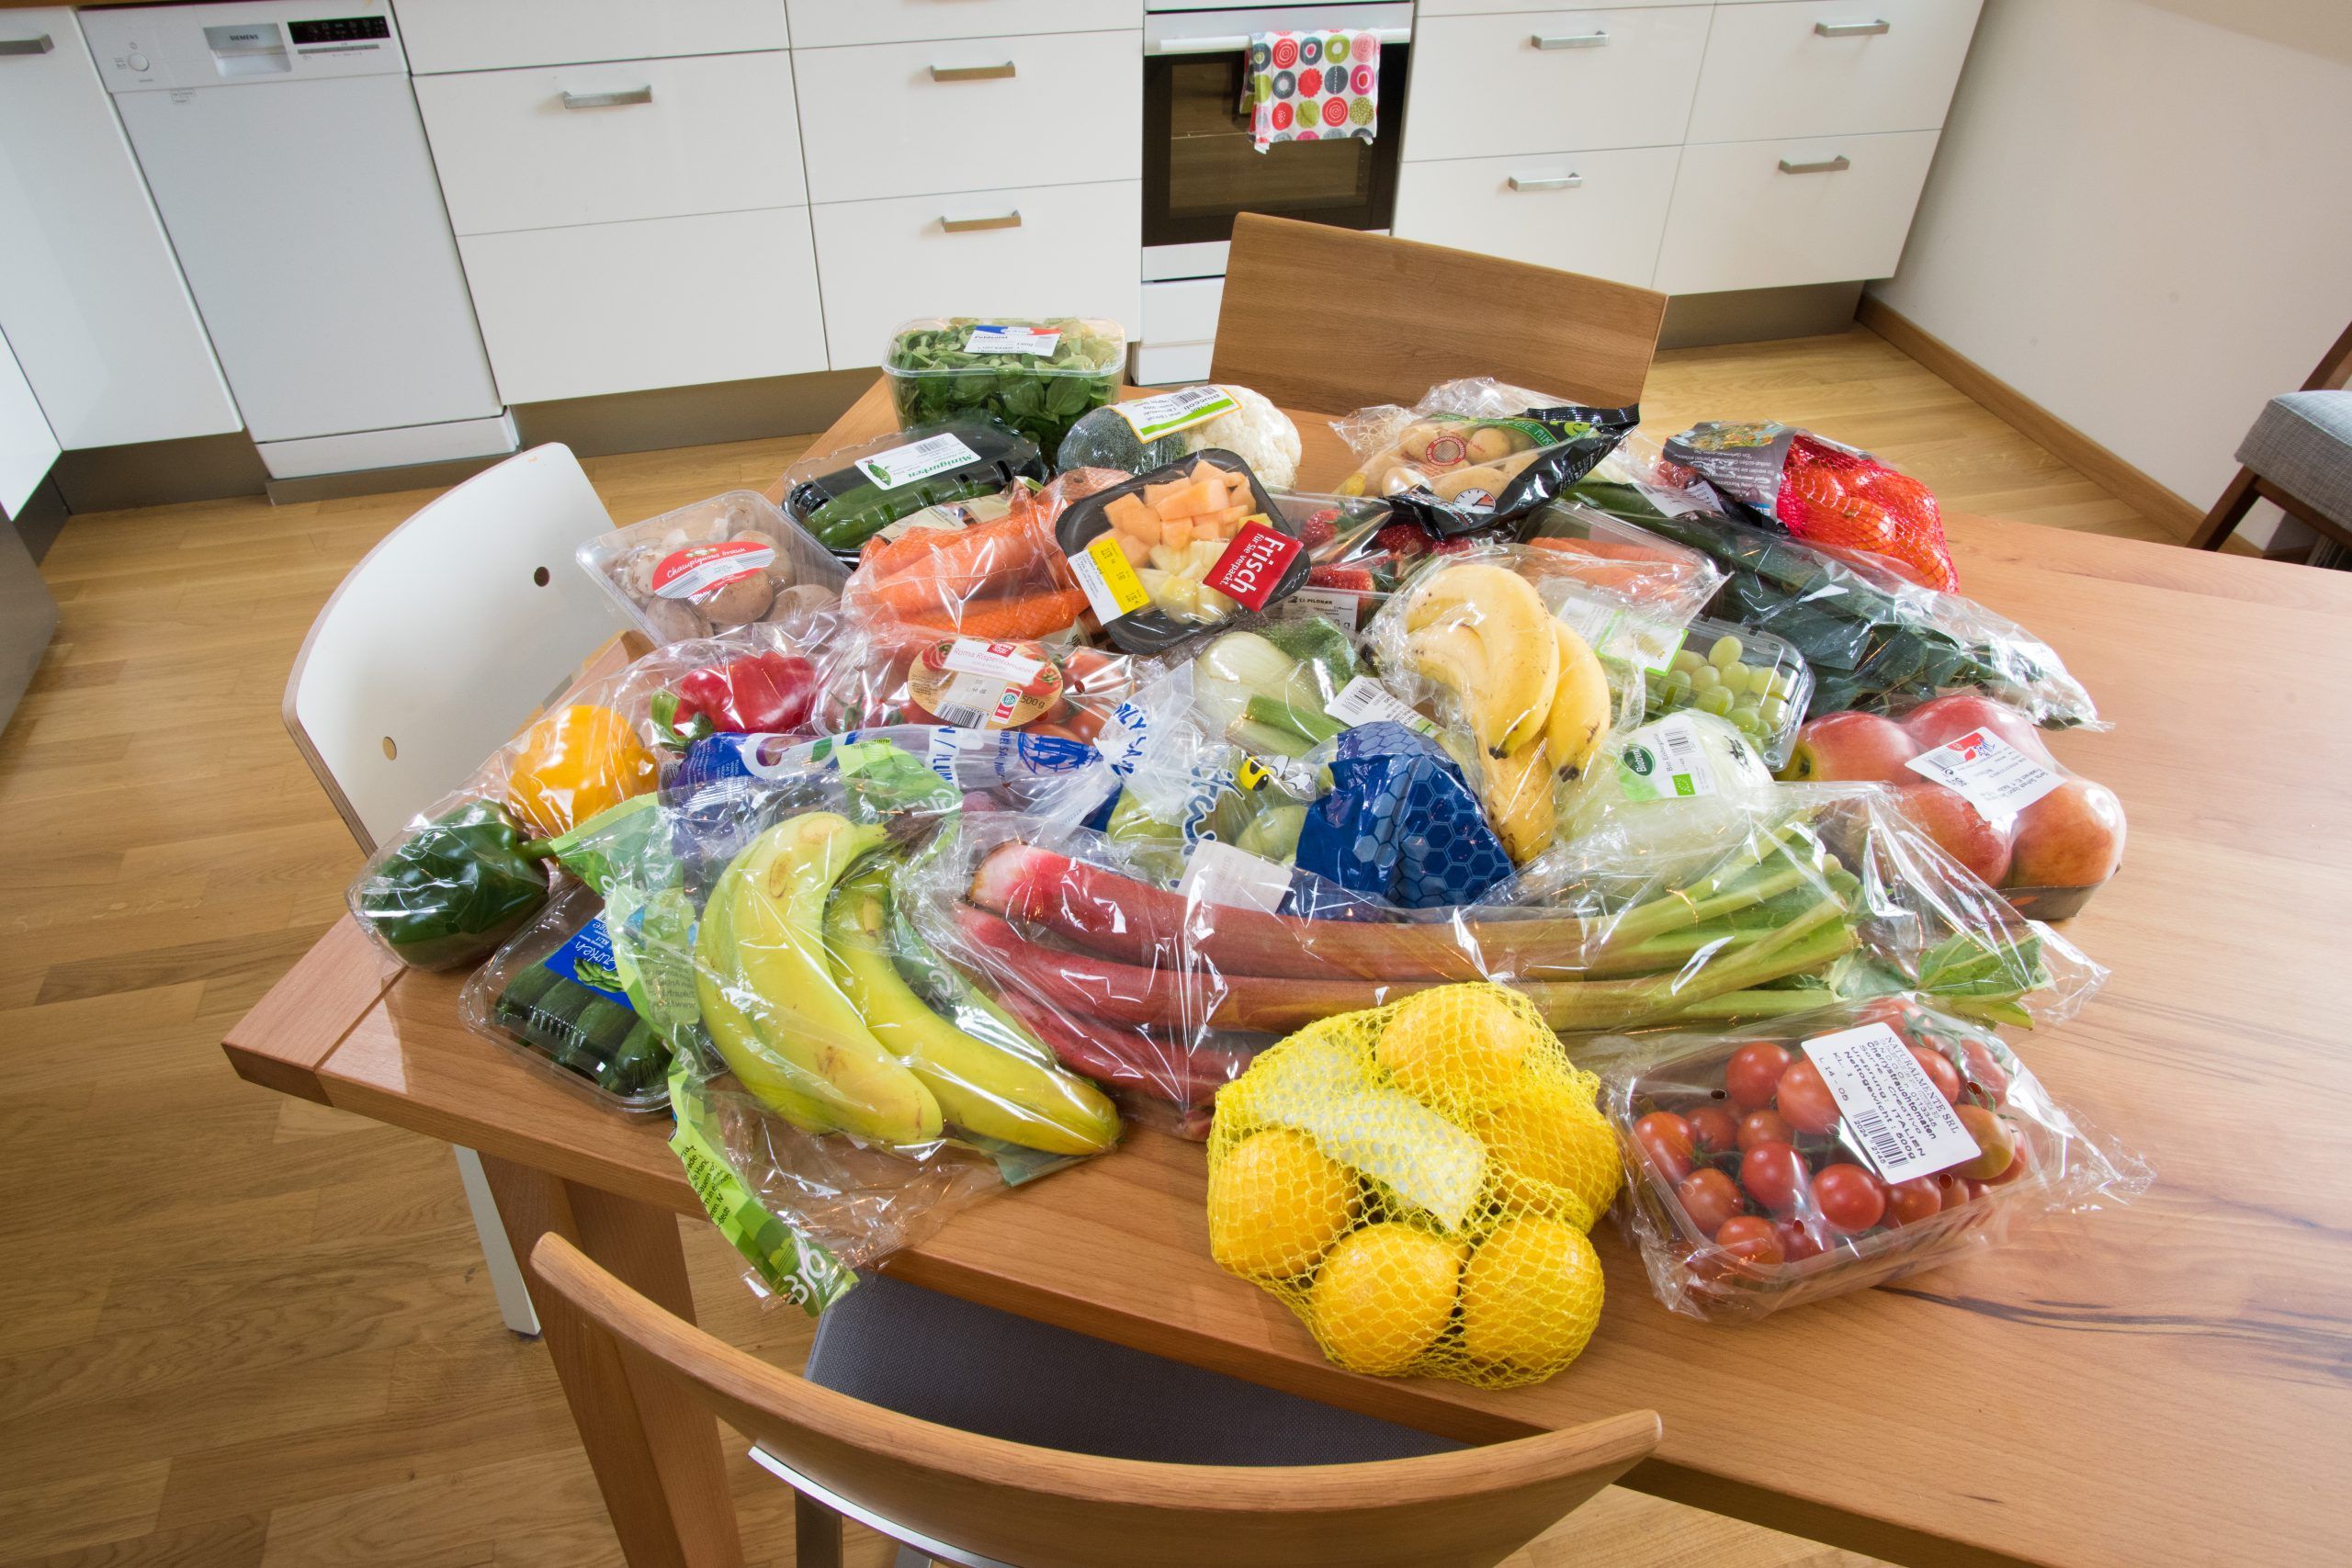 verpacktes Obst